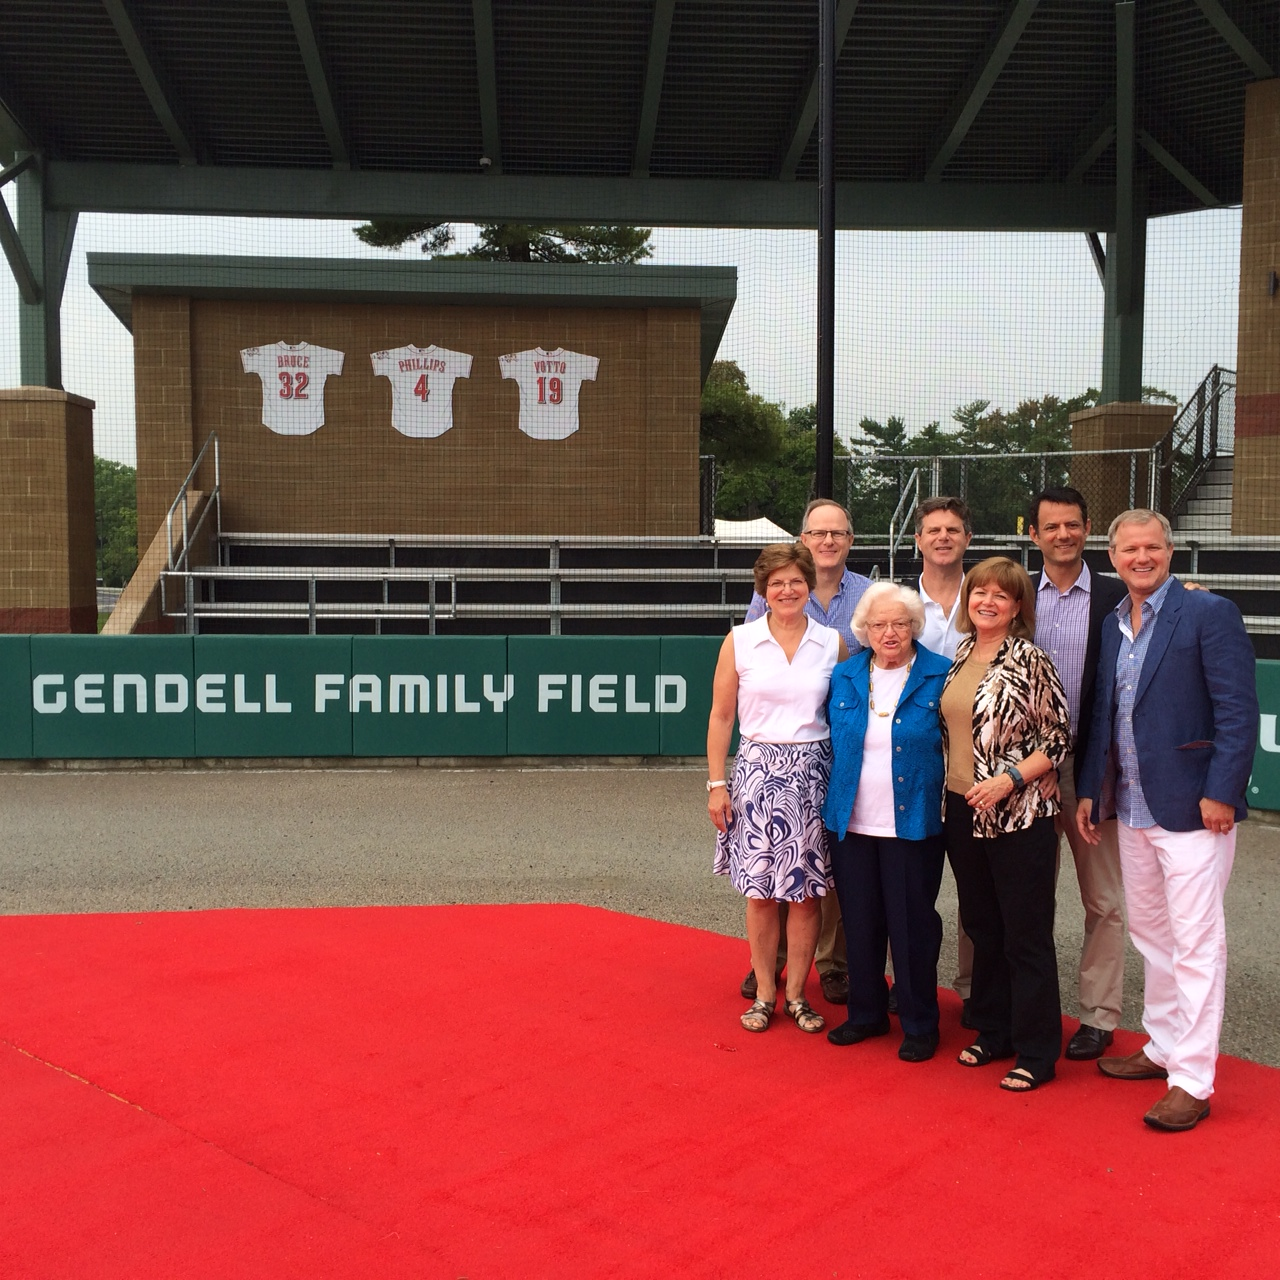 Gendell Family Field at the Cincinnati Reds Urban Youth Academy